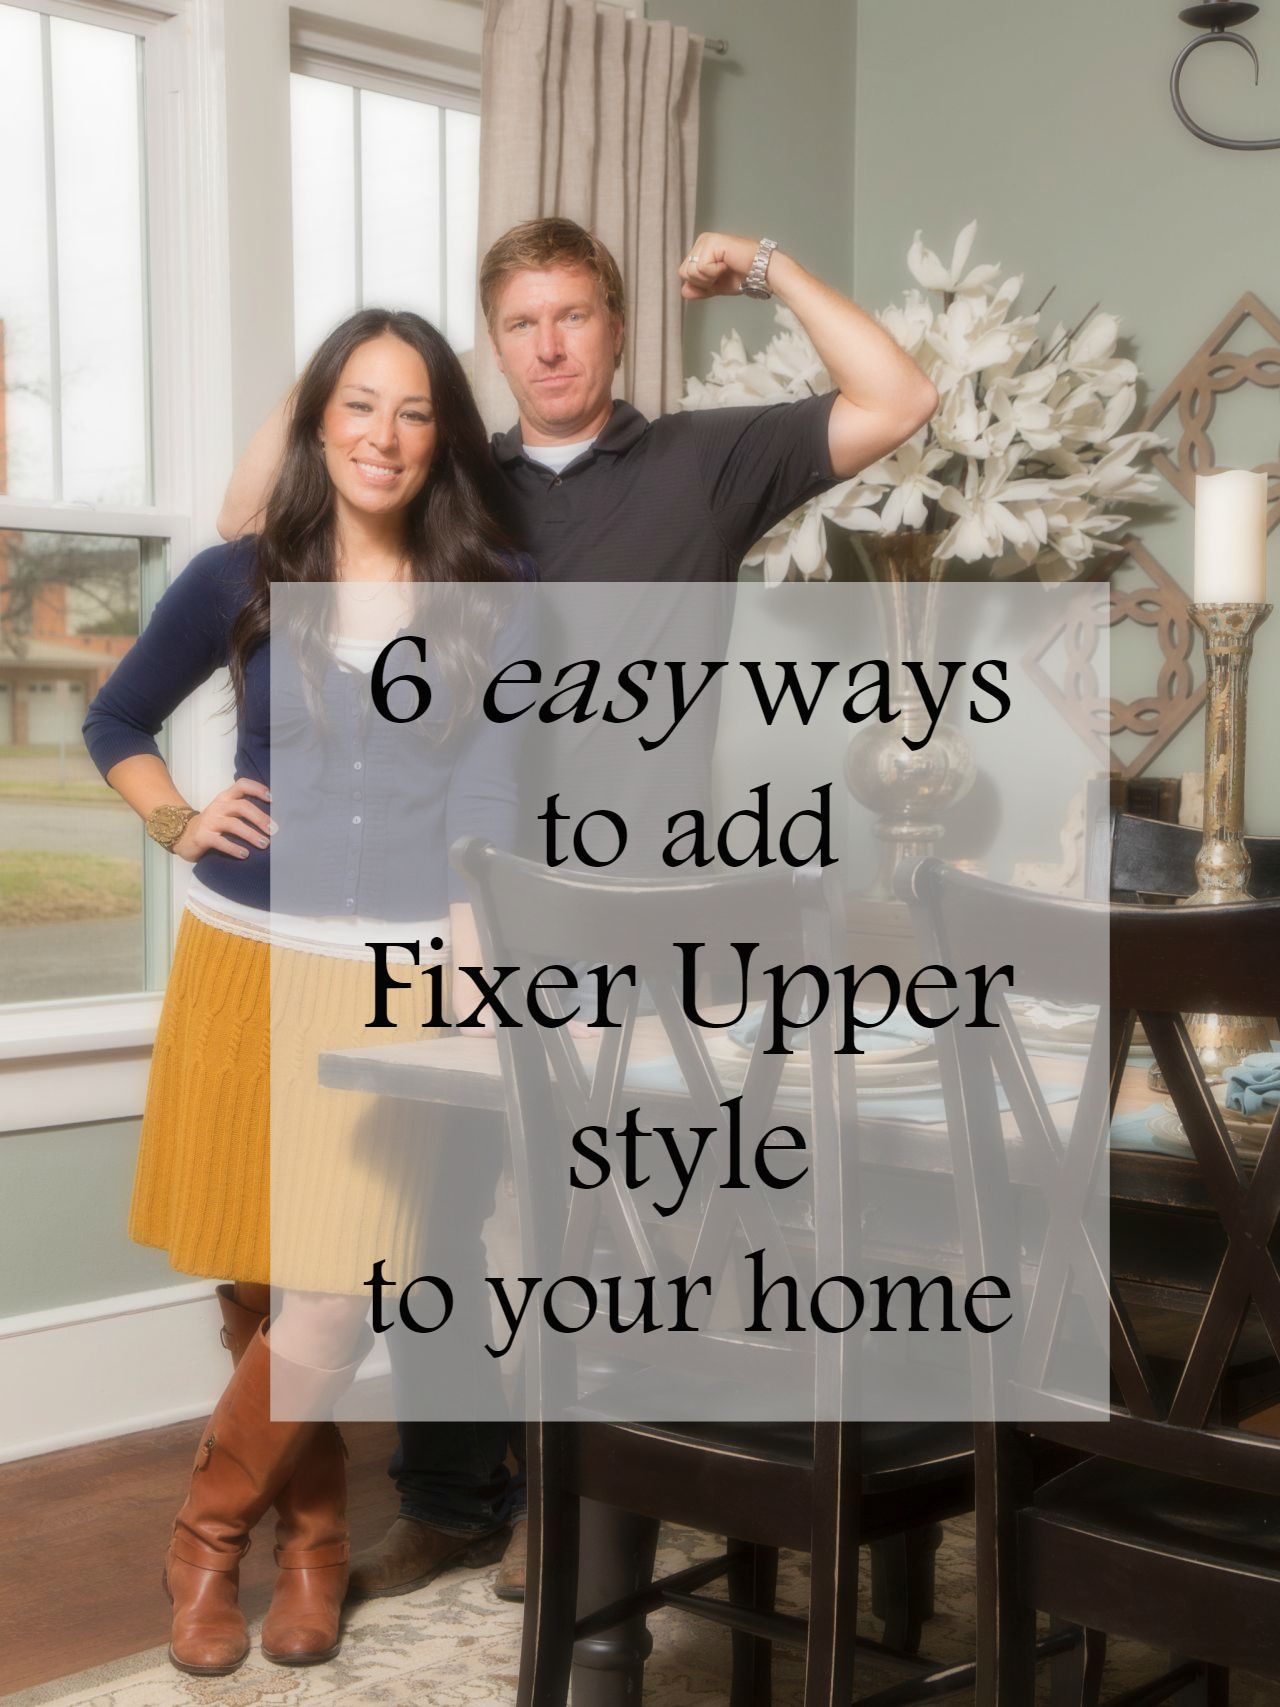 Fixer upper kitchen wall colors - 6 Easy Ways To Add Fixer Upper Style To Your Home